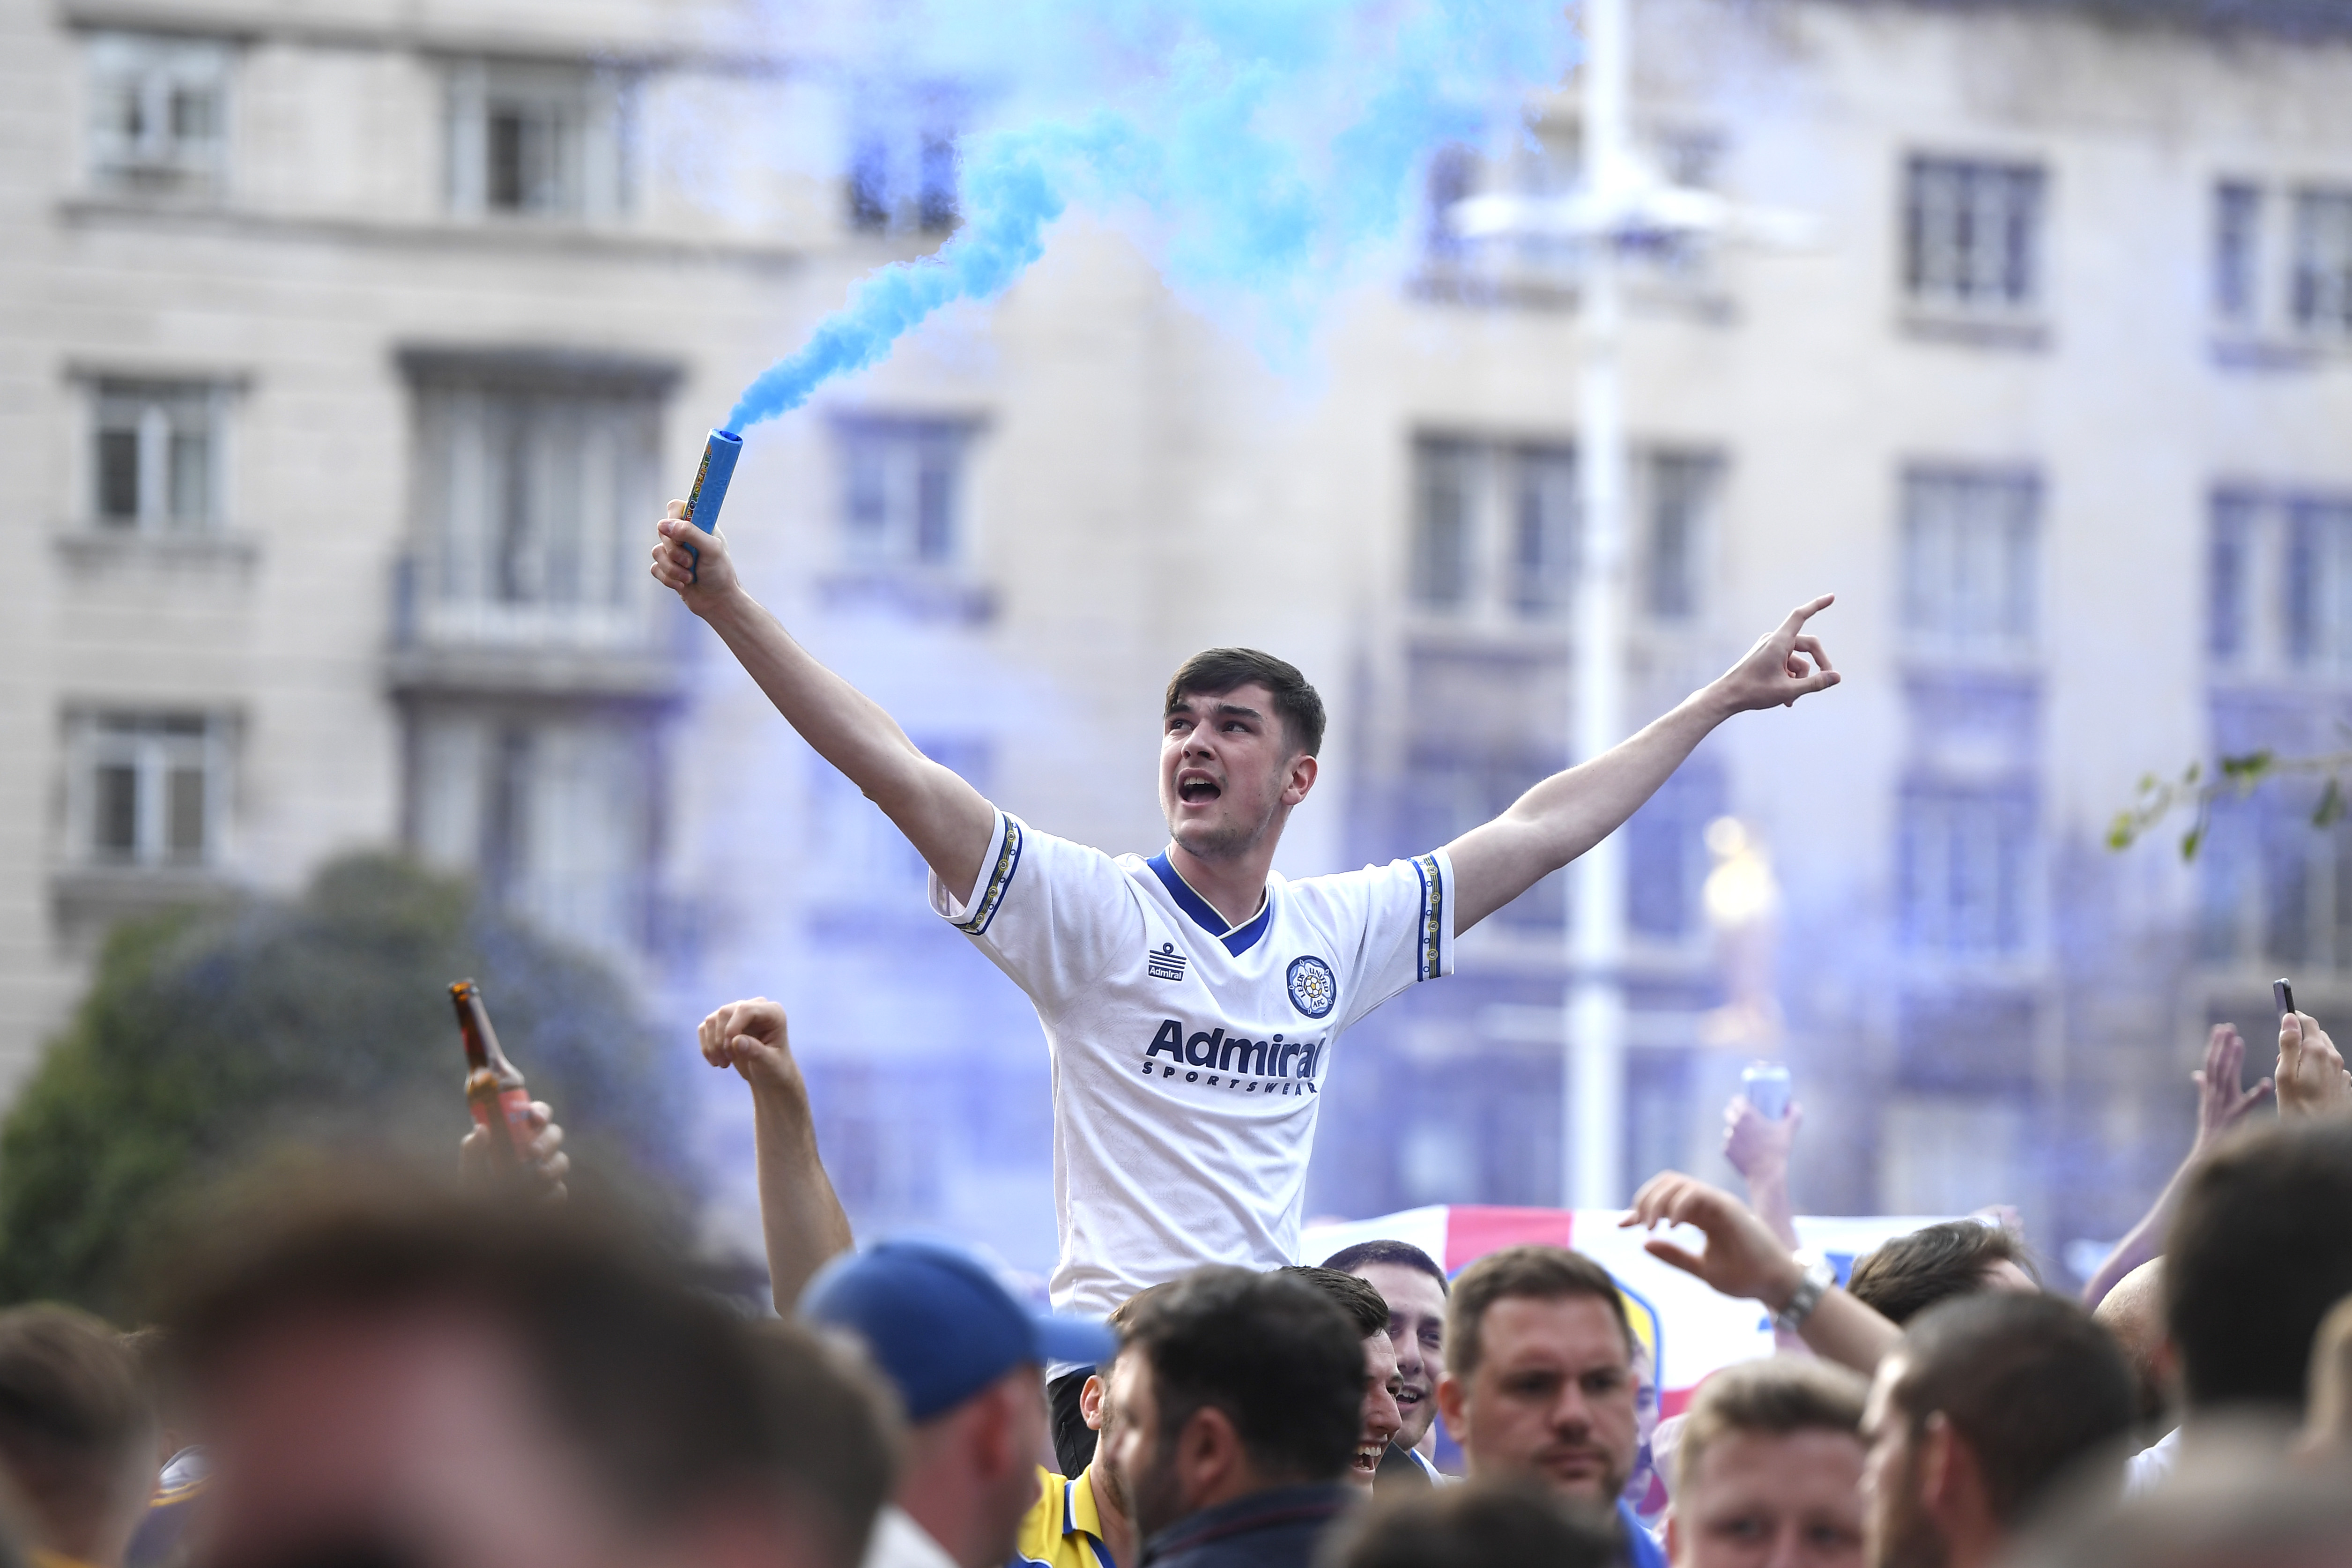 LEEDS, ENGLAND - JULY 19: Leeds United fans celebrate after winning the Sky Bet Championship title at Millennium Square on July 19, 2020 in Leeds, England. (Photo by George Wood/Getty Images)